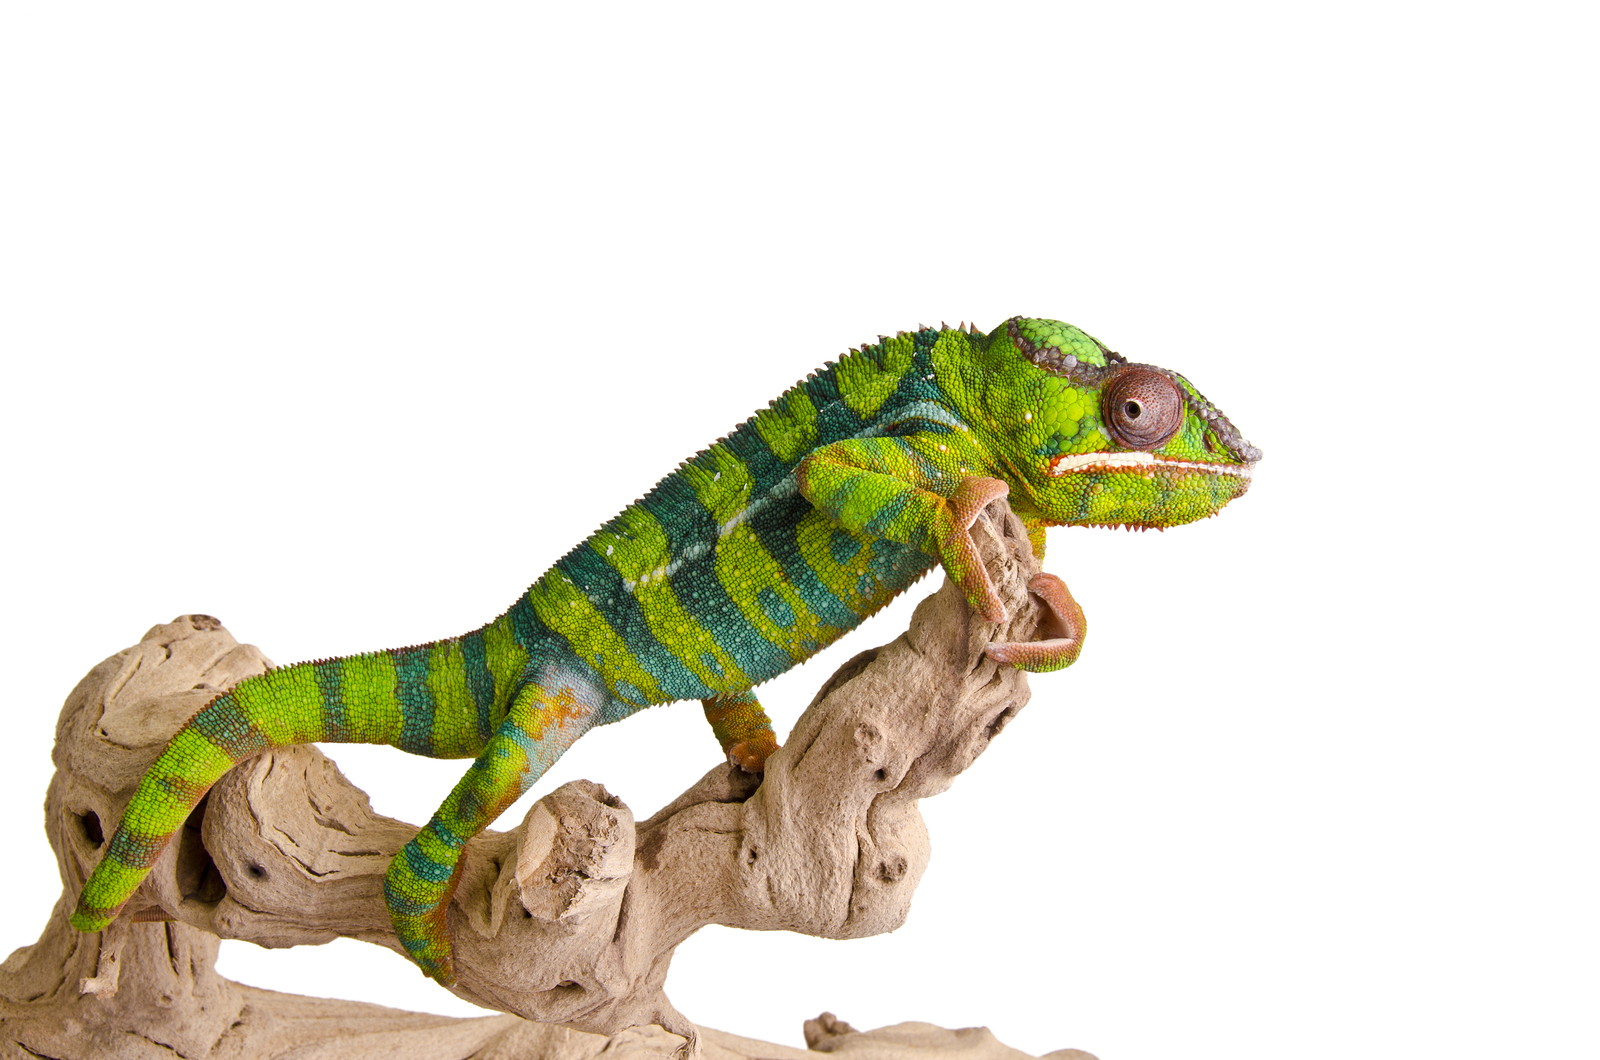 reptile sitting on a piece of wood